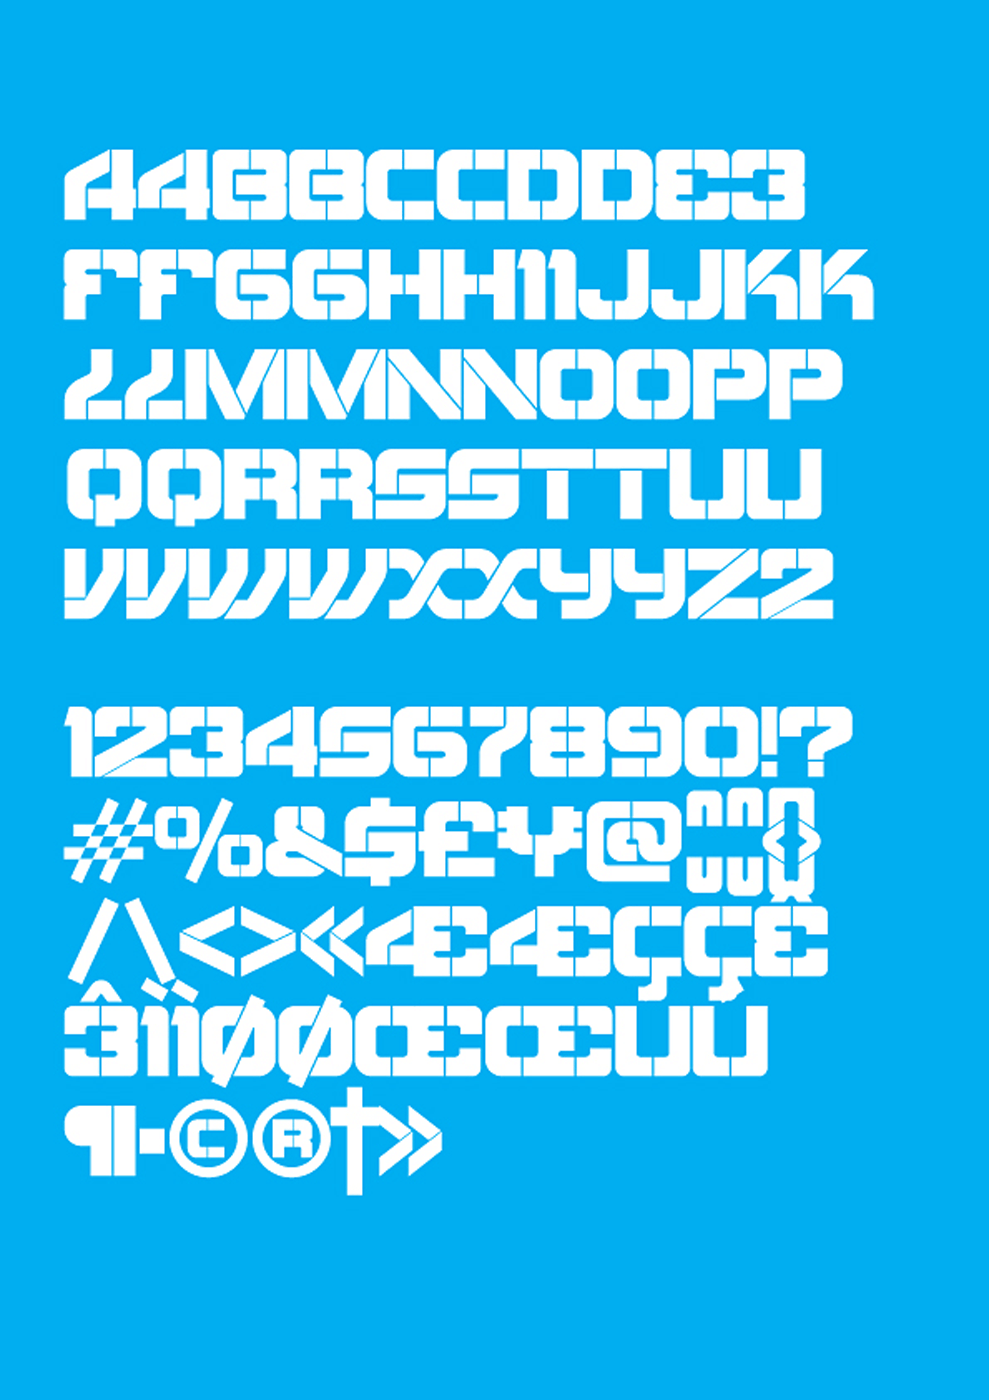 hypefortype - typo/graphic posters